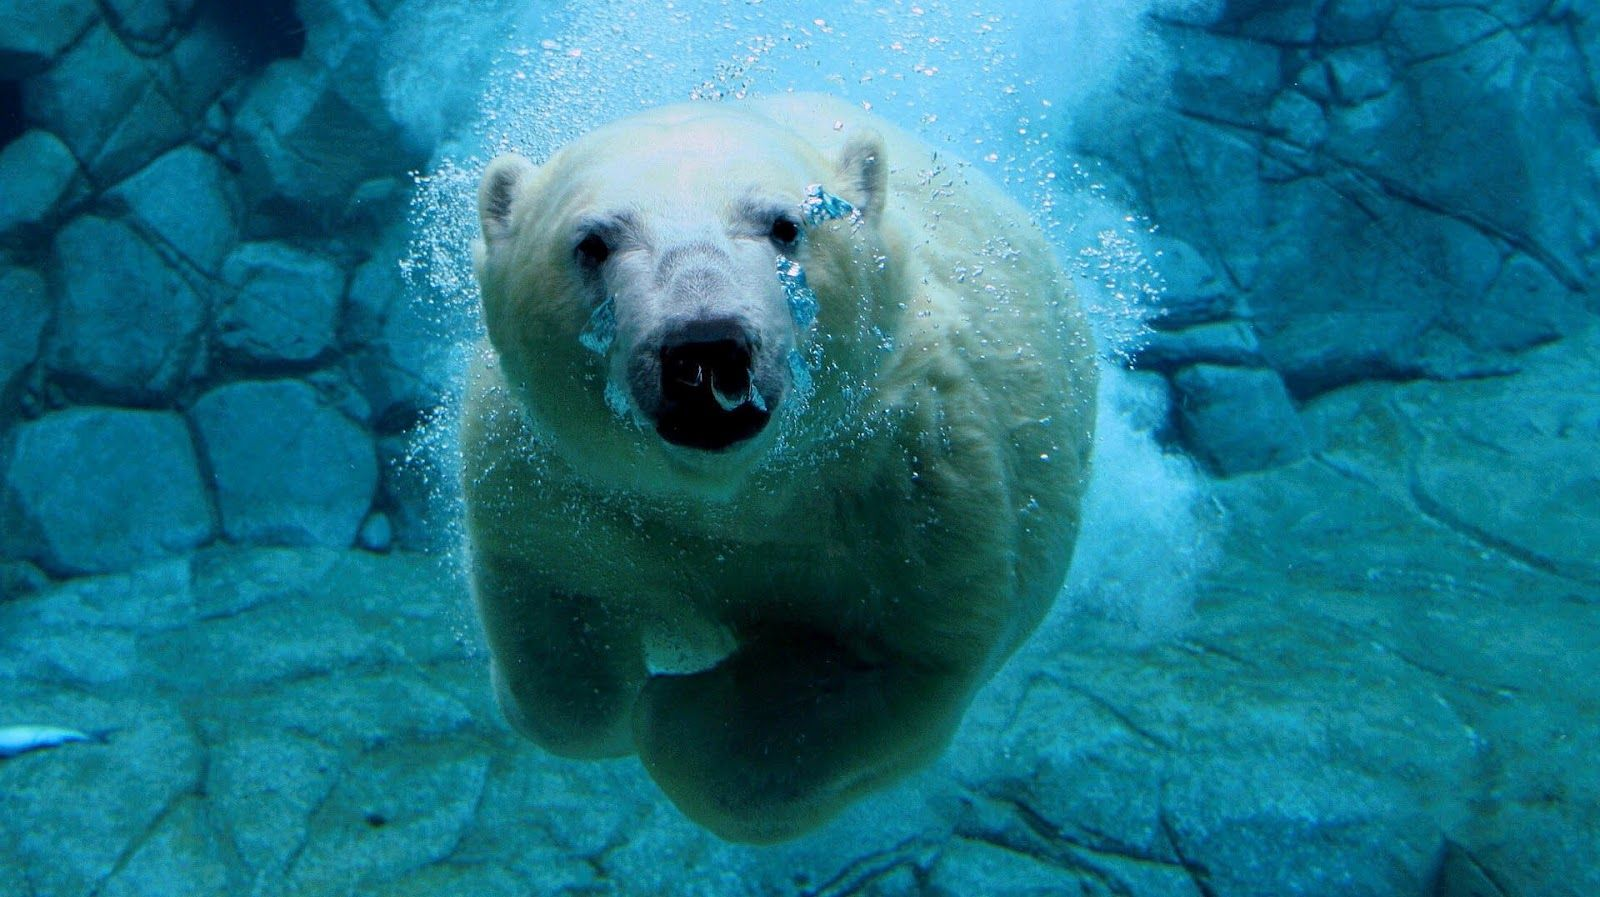 underwater animals hd animal wallpaper with a polar bear